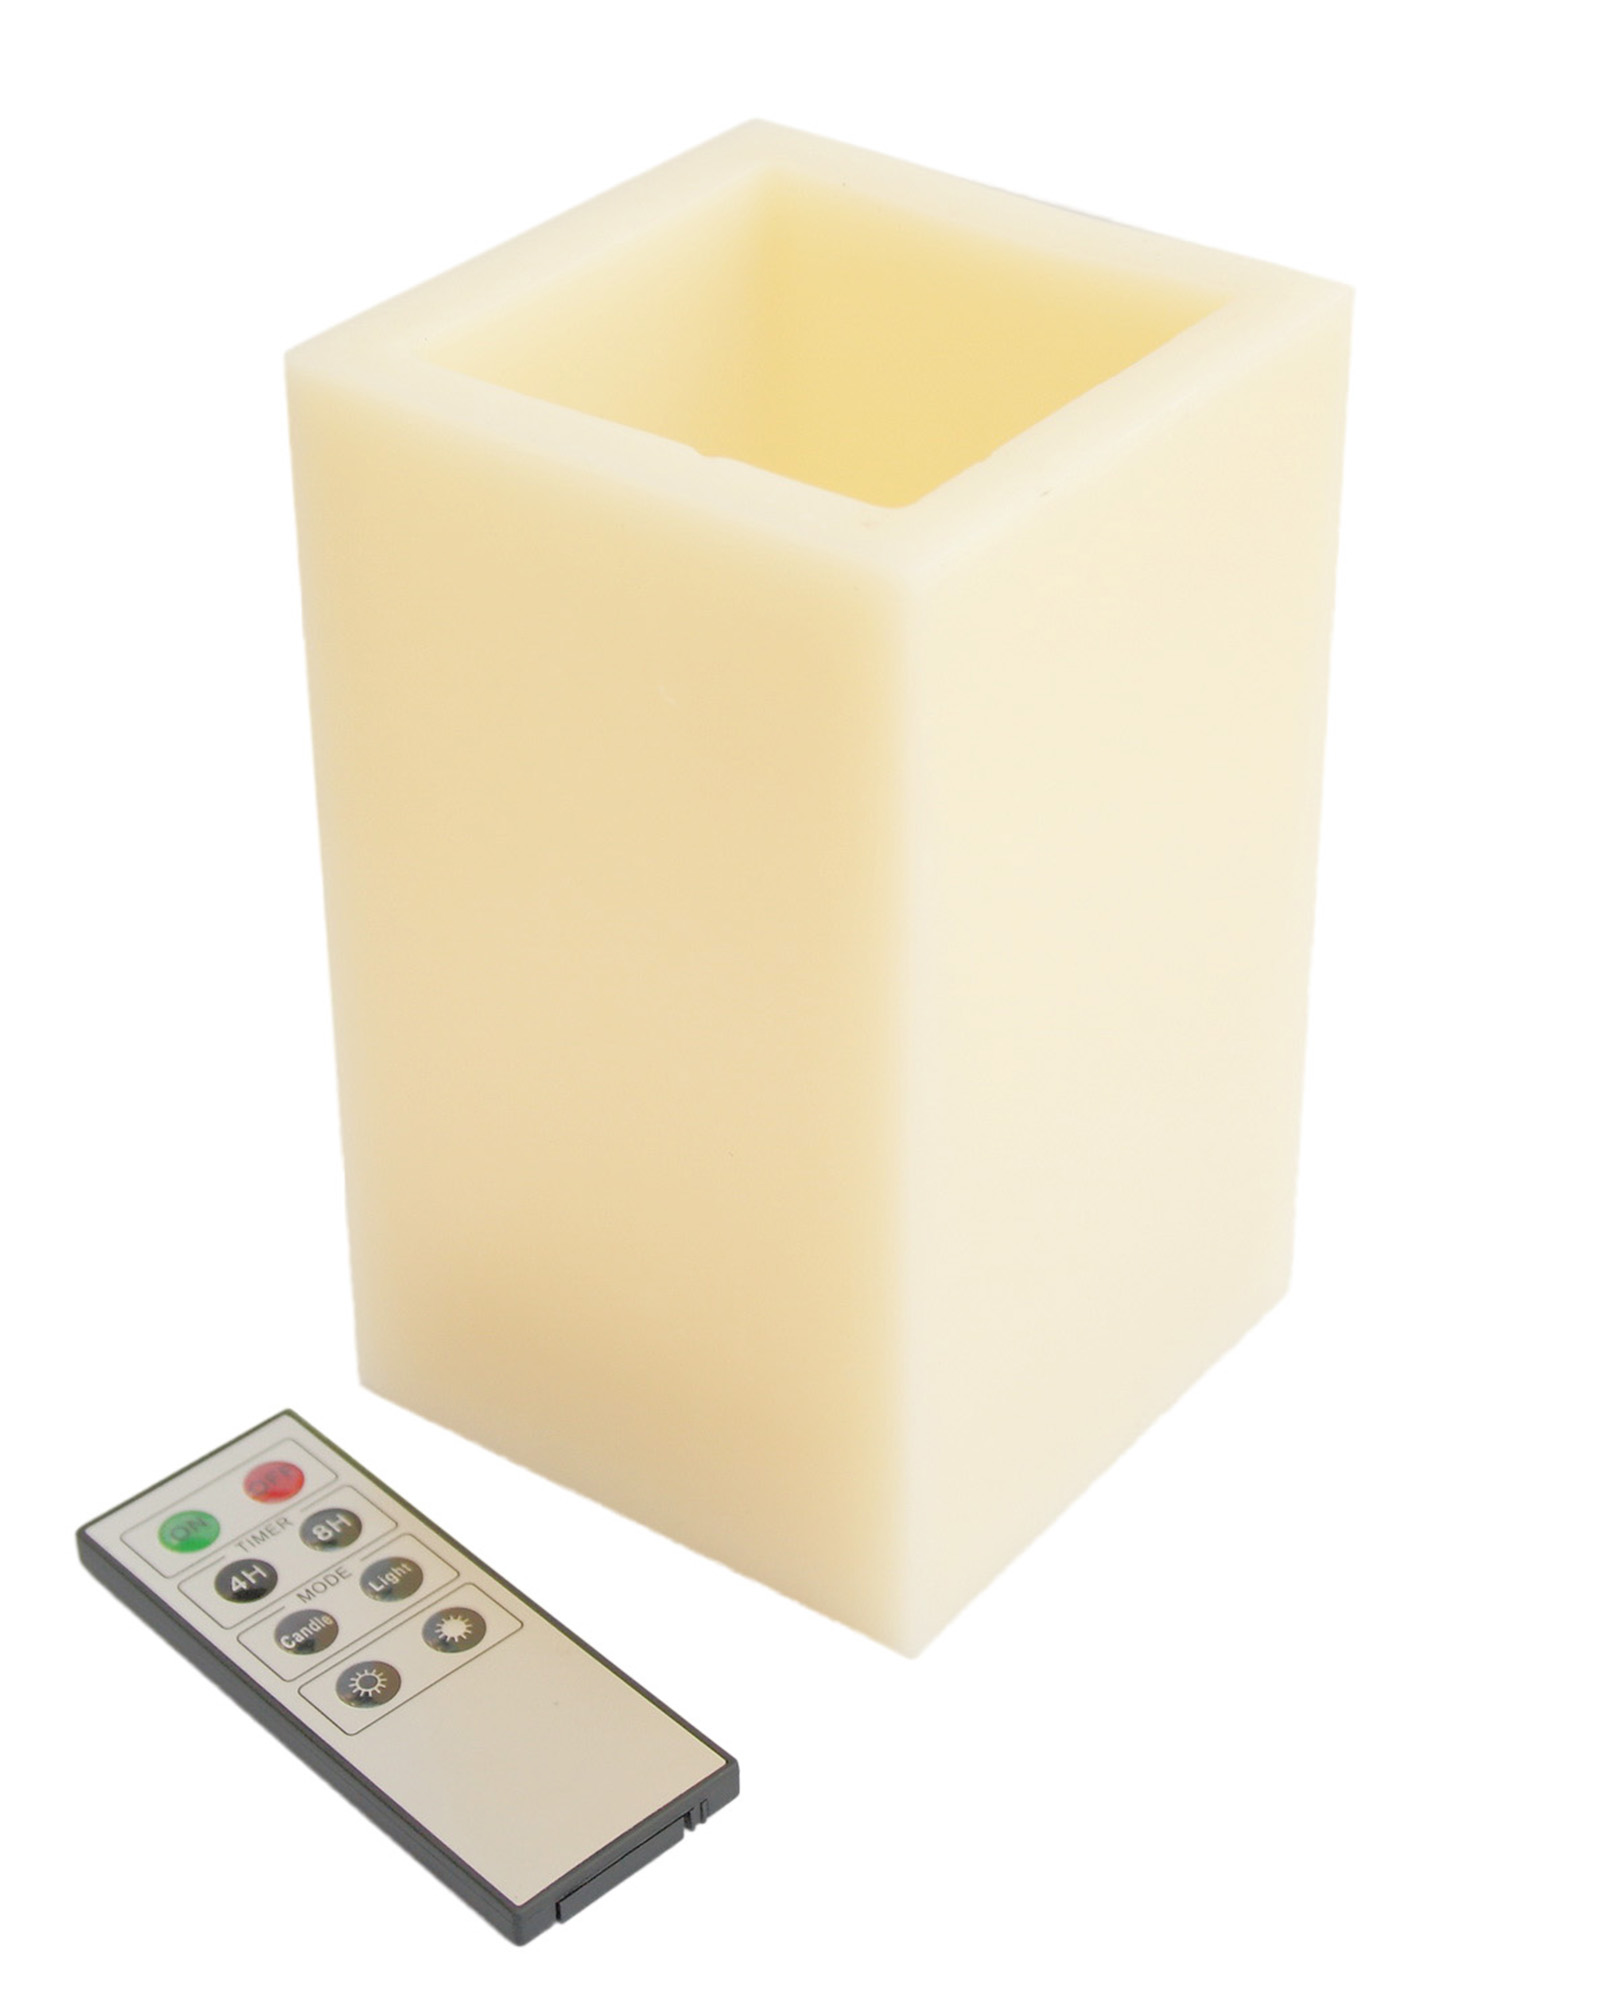 Square Smooth Edge Remote Controlled Flameless Wax Pillar Candle - 6 Inch Tall